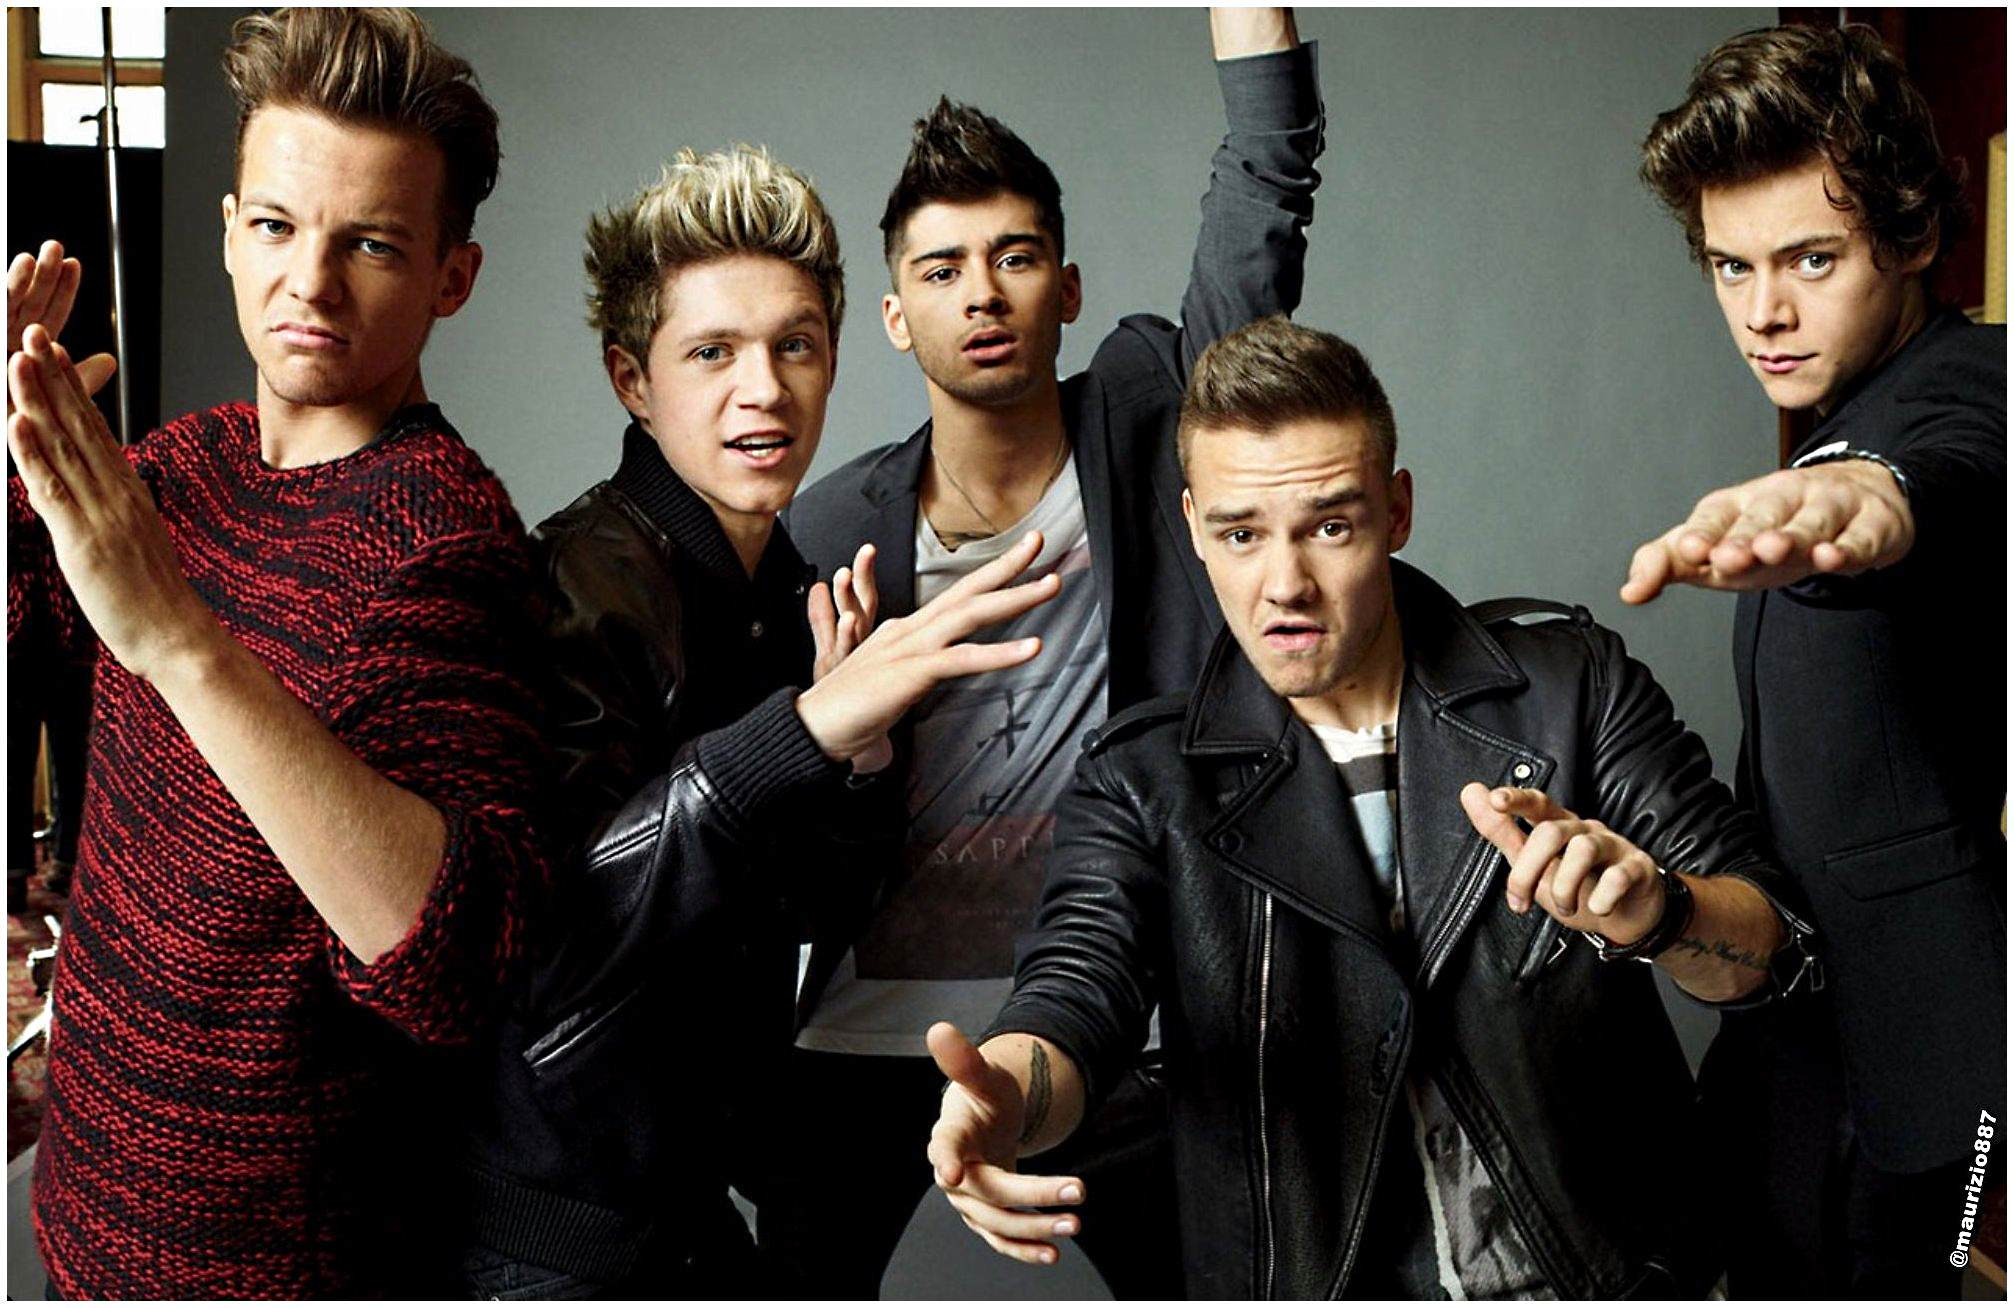 One Direction one direction 2013One Direction Photoshoot 2014